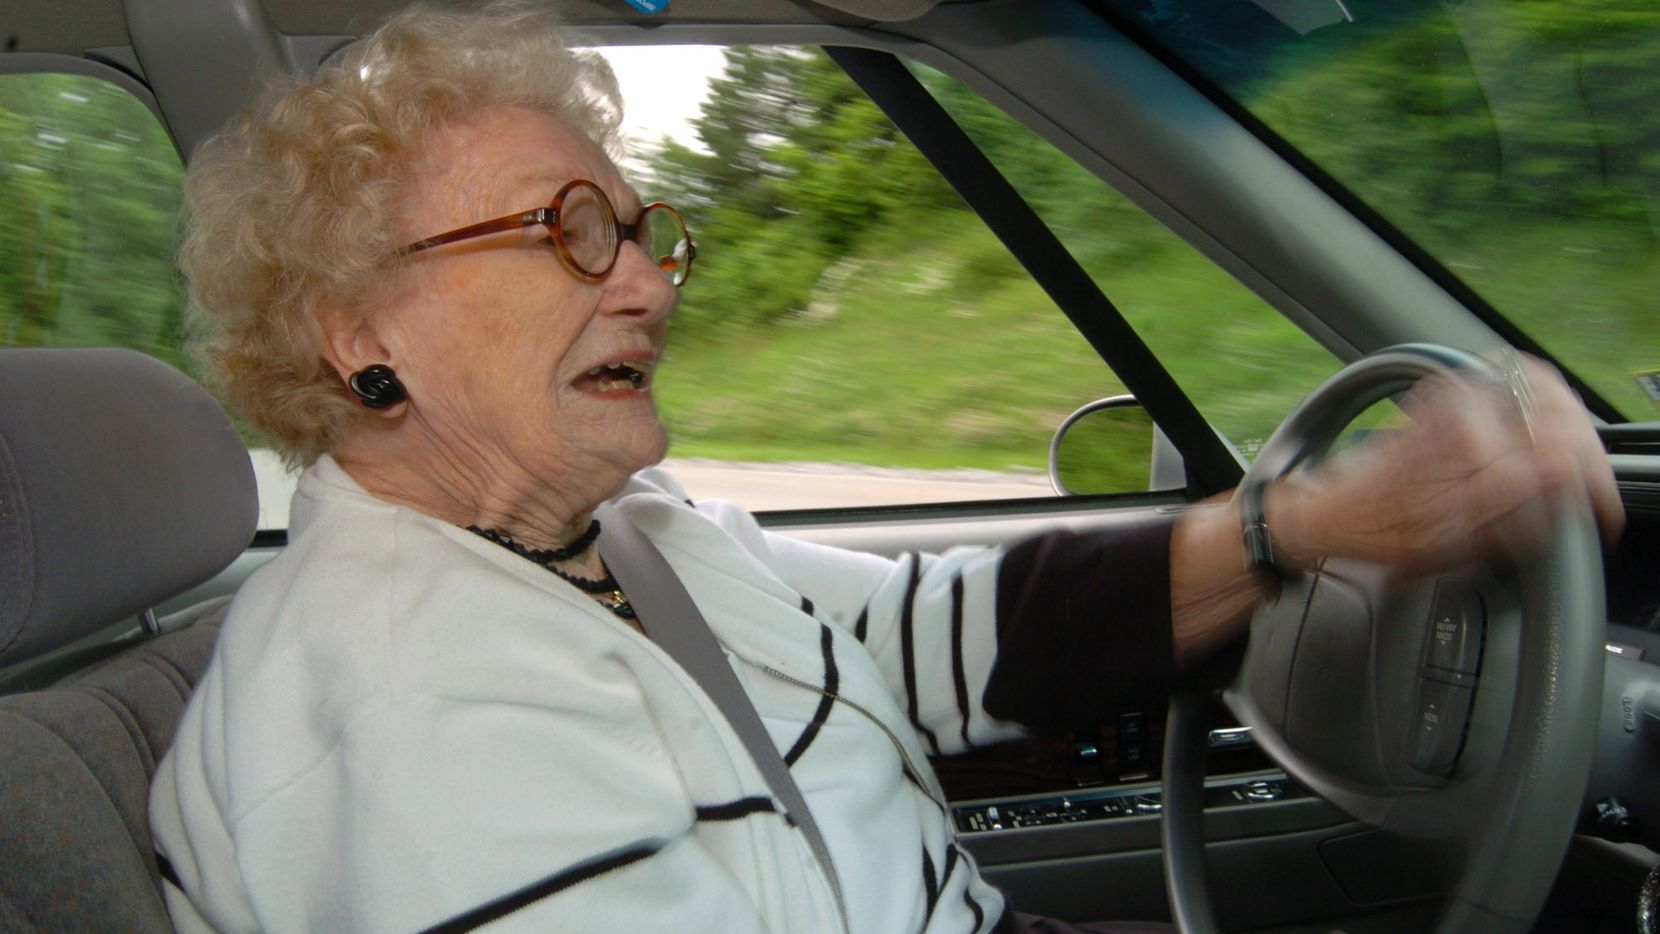 ORG XMIT: *S0409129913* ** ADVANCE FOR THURSDAY, JUNE 10 ** Dorothy Wulfers, 87, who learned to drive a Model T Ford at age 15, drives down a city street June 4, 2004, in Morgantown, W.Va. Wulfers said only her and God will decide when she stops driving. (AP Photo/Dale Sparks) NY348 06132004xNEWS